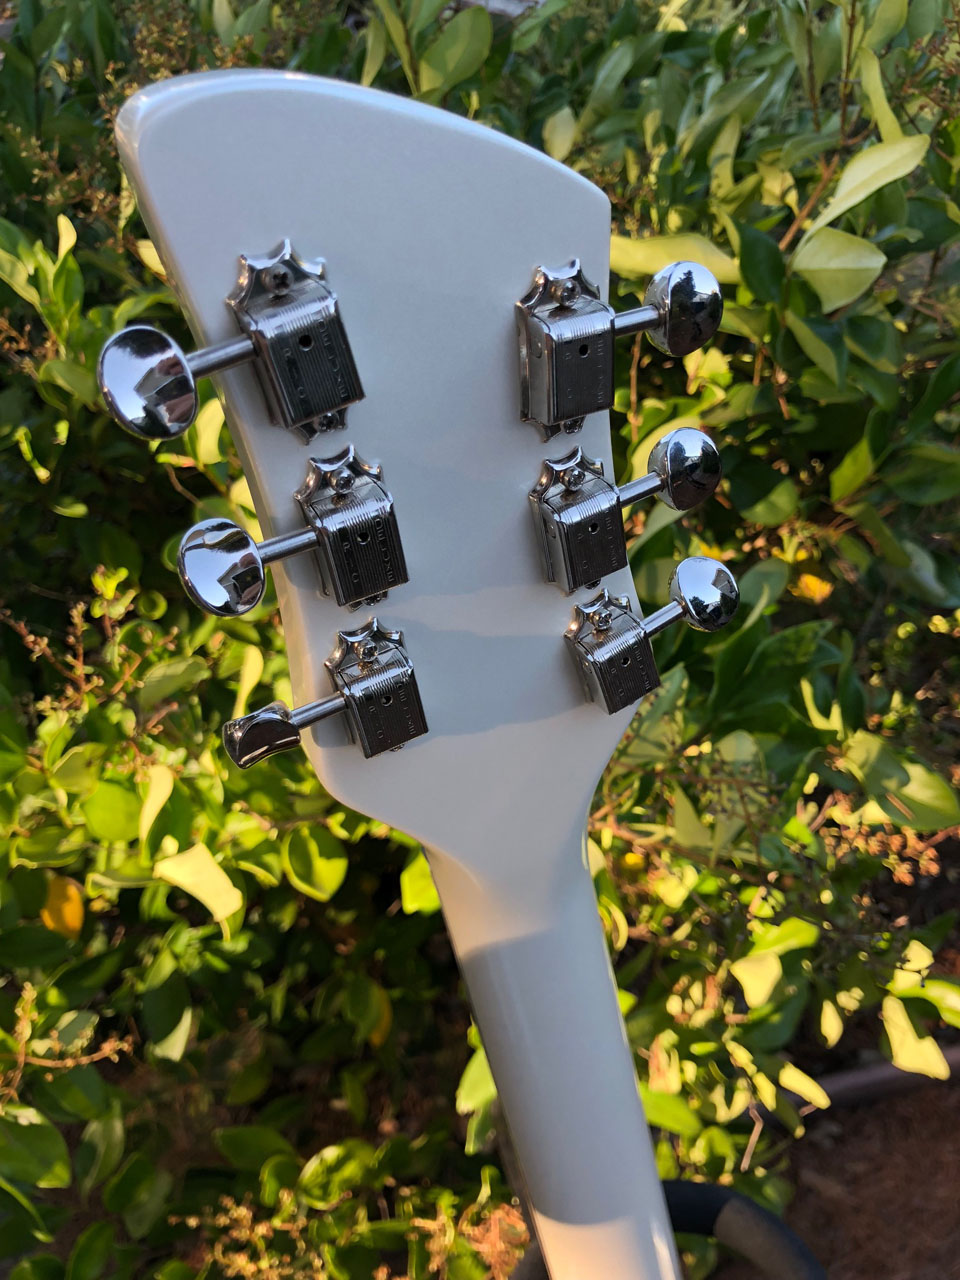 HEADSTOCK WAS NARROWED TO 1970 WIDTH, FITTED WITH VINTAGE TUNERS